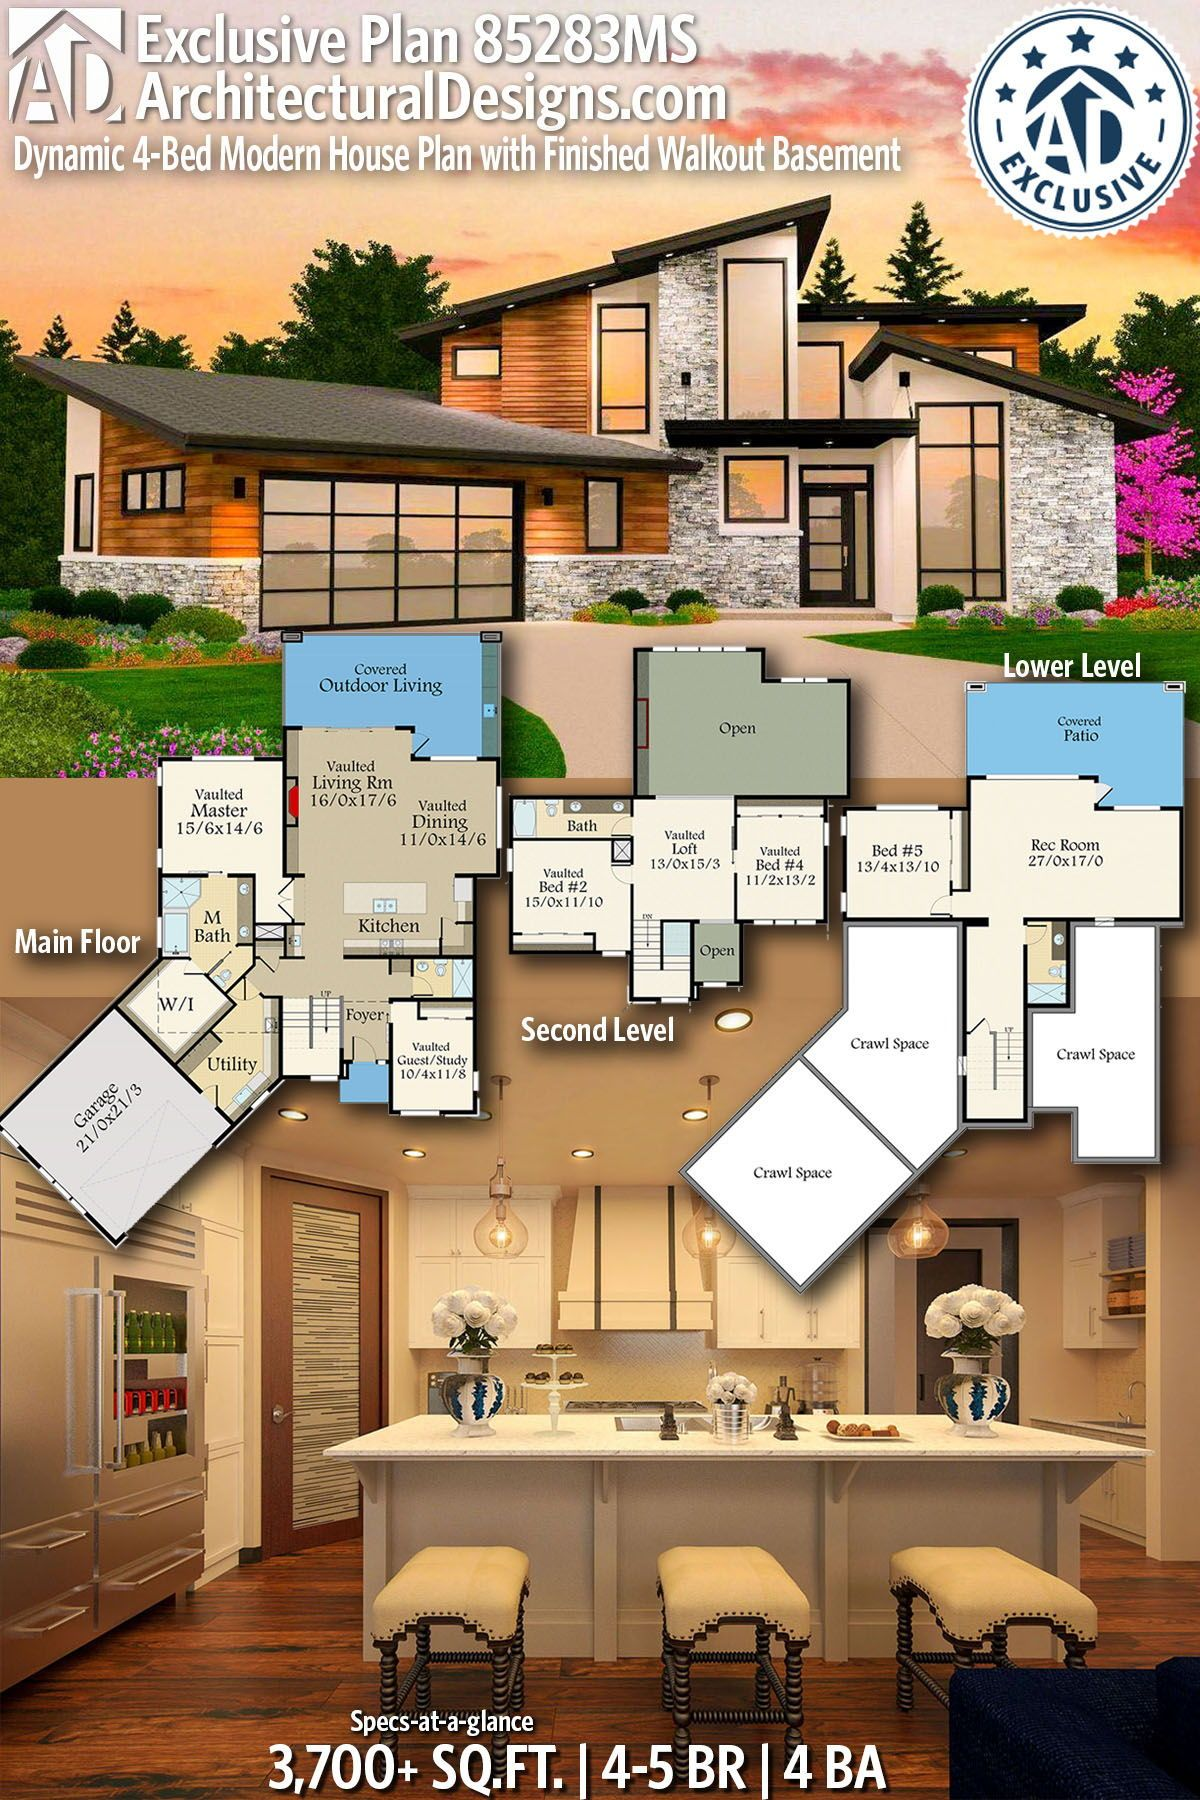 Plan 85283MS: Dynamic 4-Bed Modern House Plan With